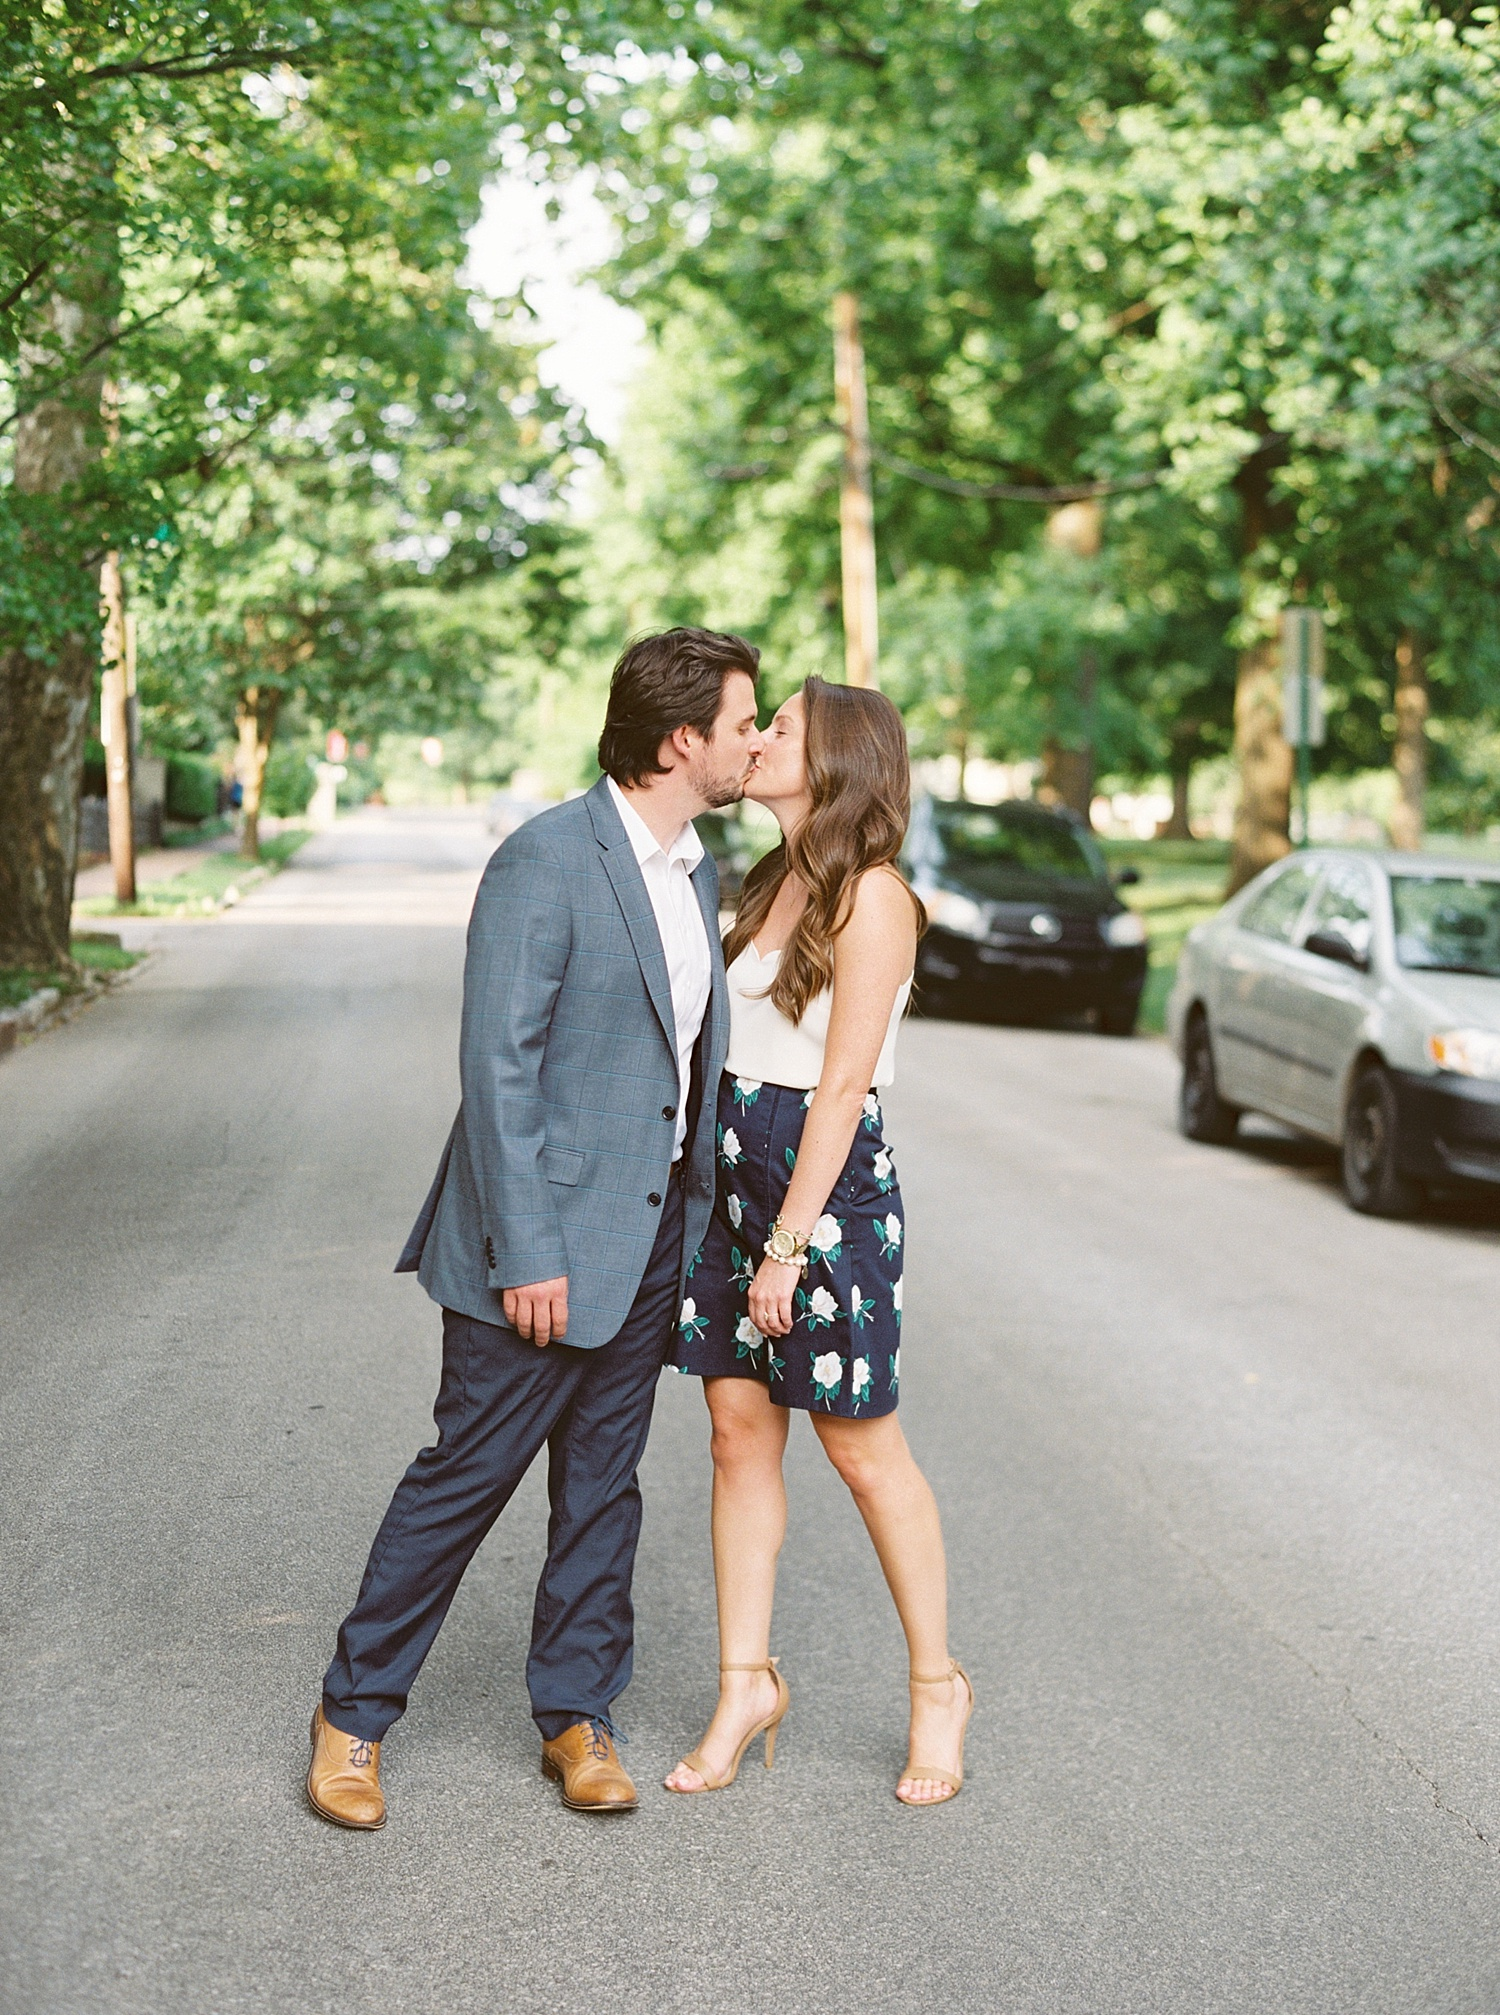 Downtown Lexington Engagement Session Talon Winery Picnic Engagement Session Gal Meets Glam Anthropologie Dress Laura Bodnar Photography Lexington Wedding Photographer Film Photography_0005-1.jpg